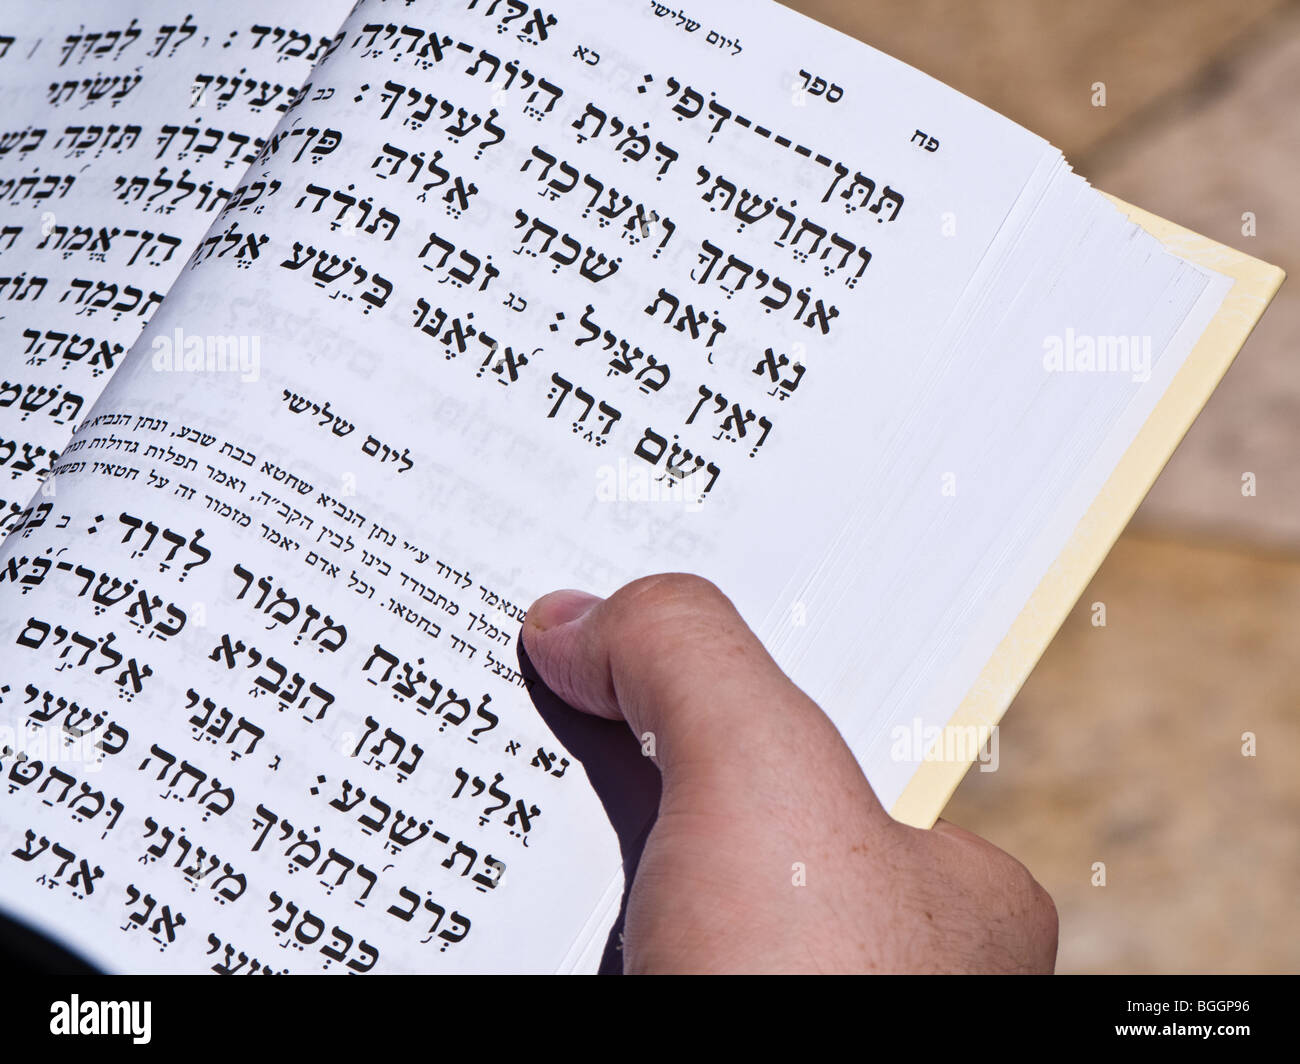 Jerusalem Israel at  the Walling wall (referred to as the Western Wall or Kotel) using a daily prayerbook for the - Stock Image